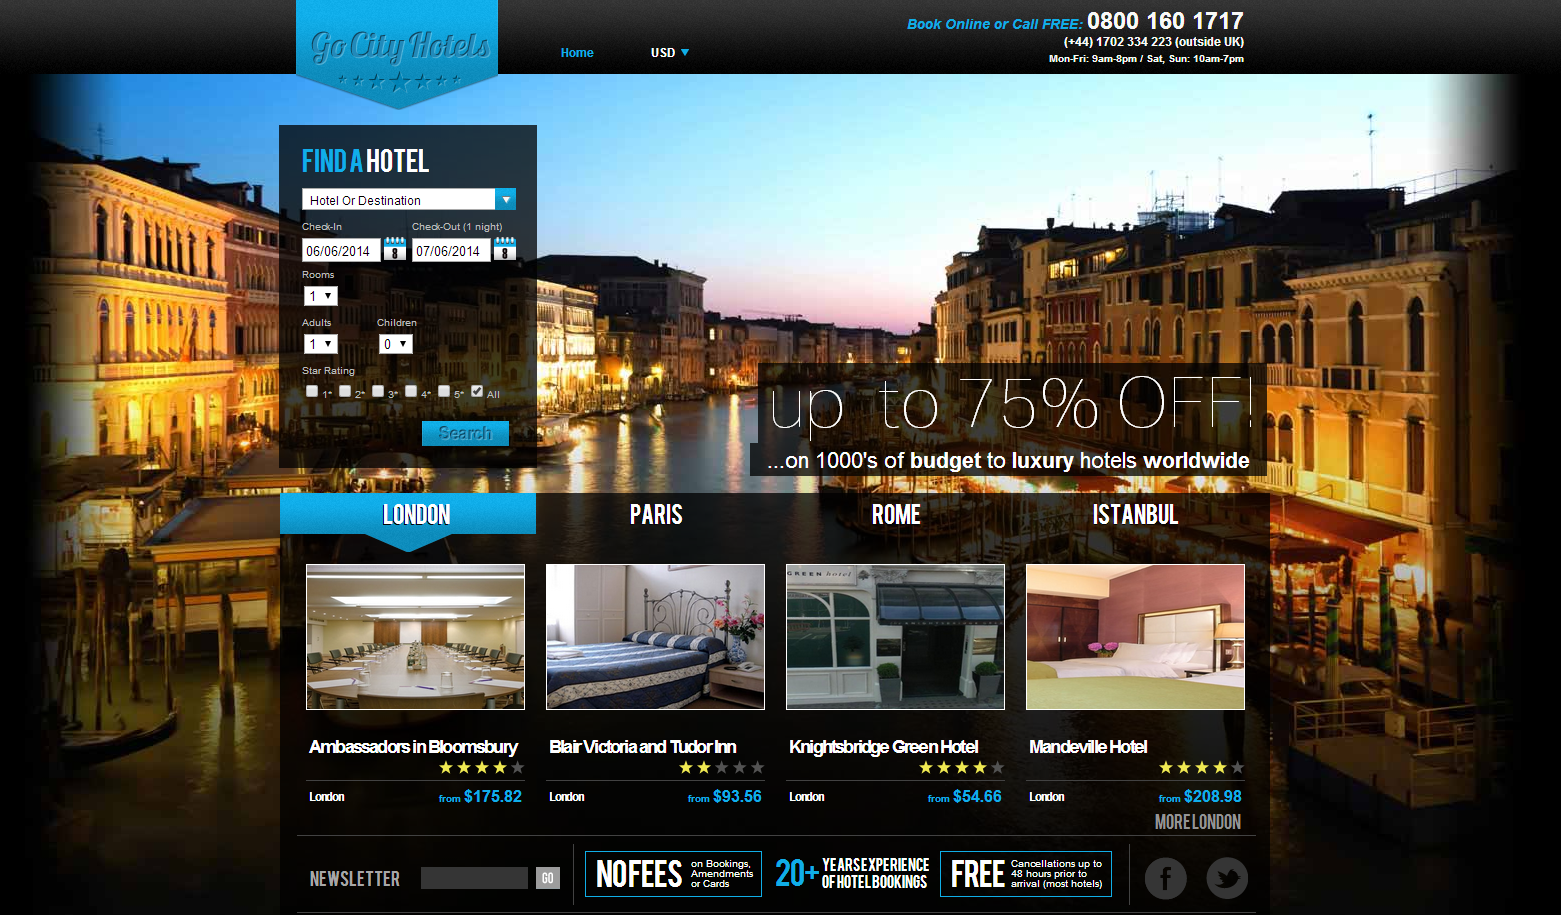 Go City Hotels